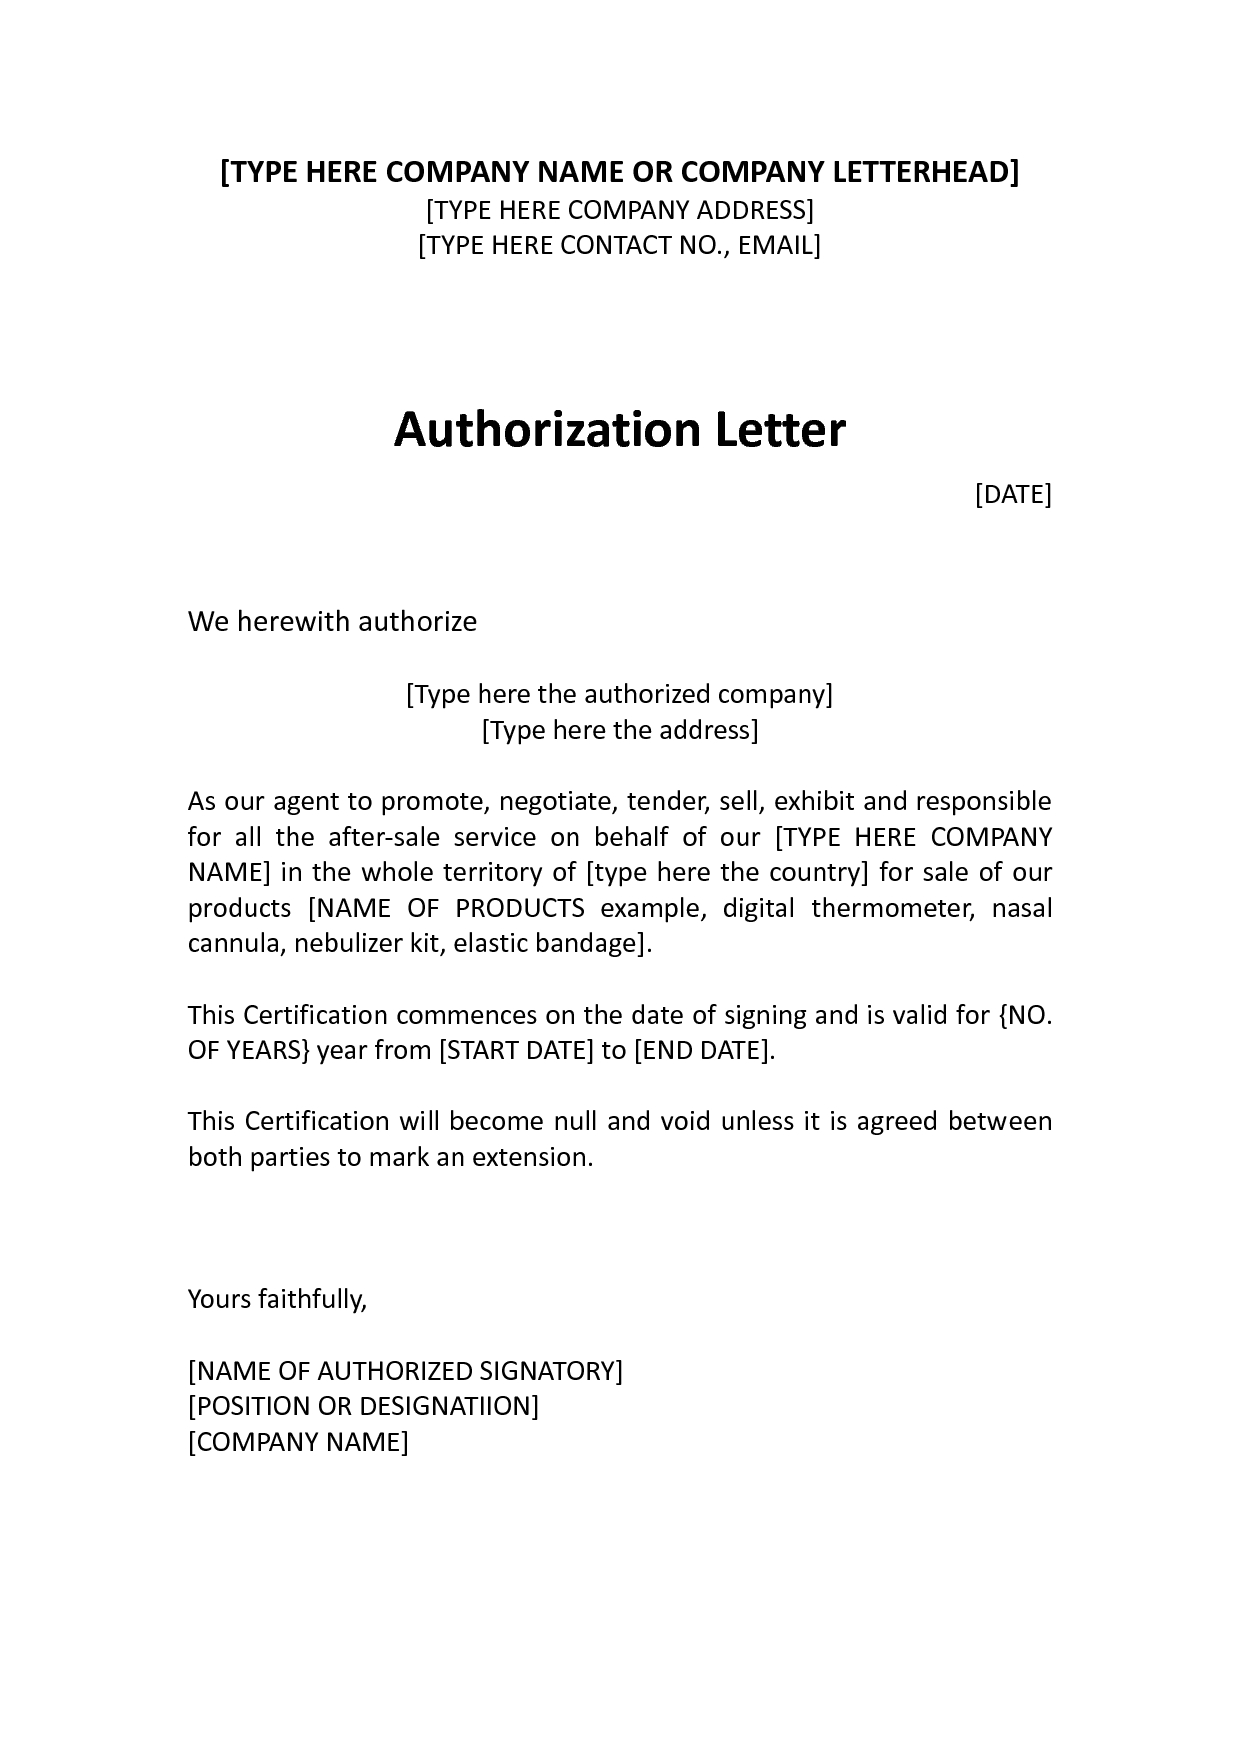 real estate commission letter template Collection-Authorization Distributor Letter sample distributor dealer authorization letter given by a pany to its distributor or dealer 13-o